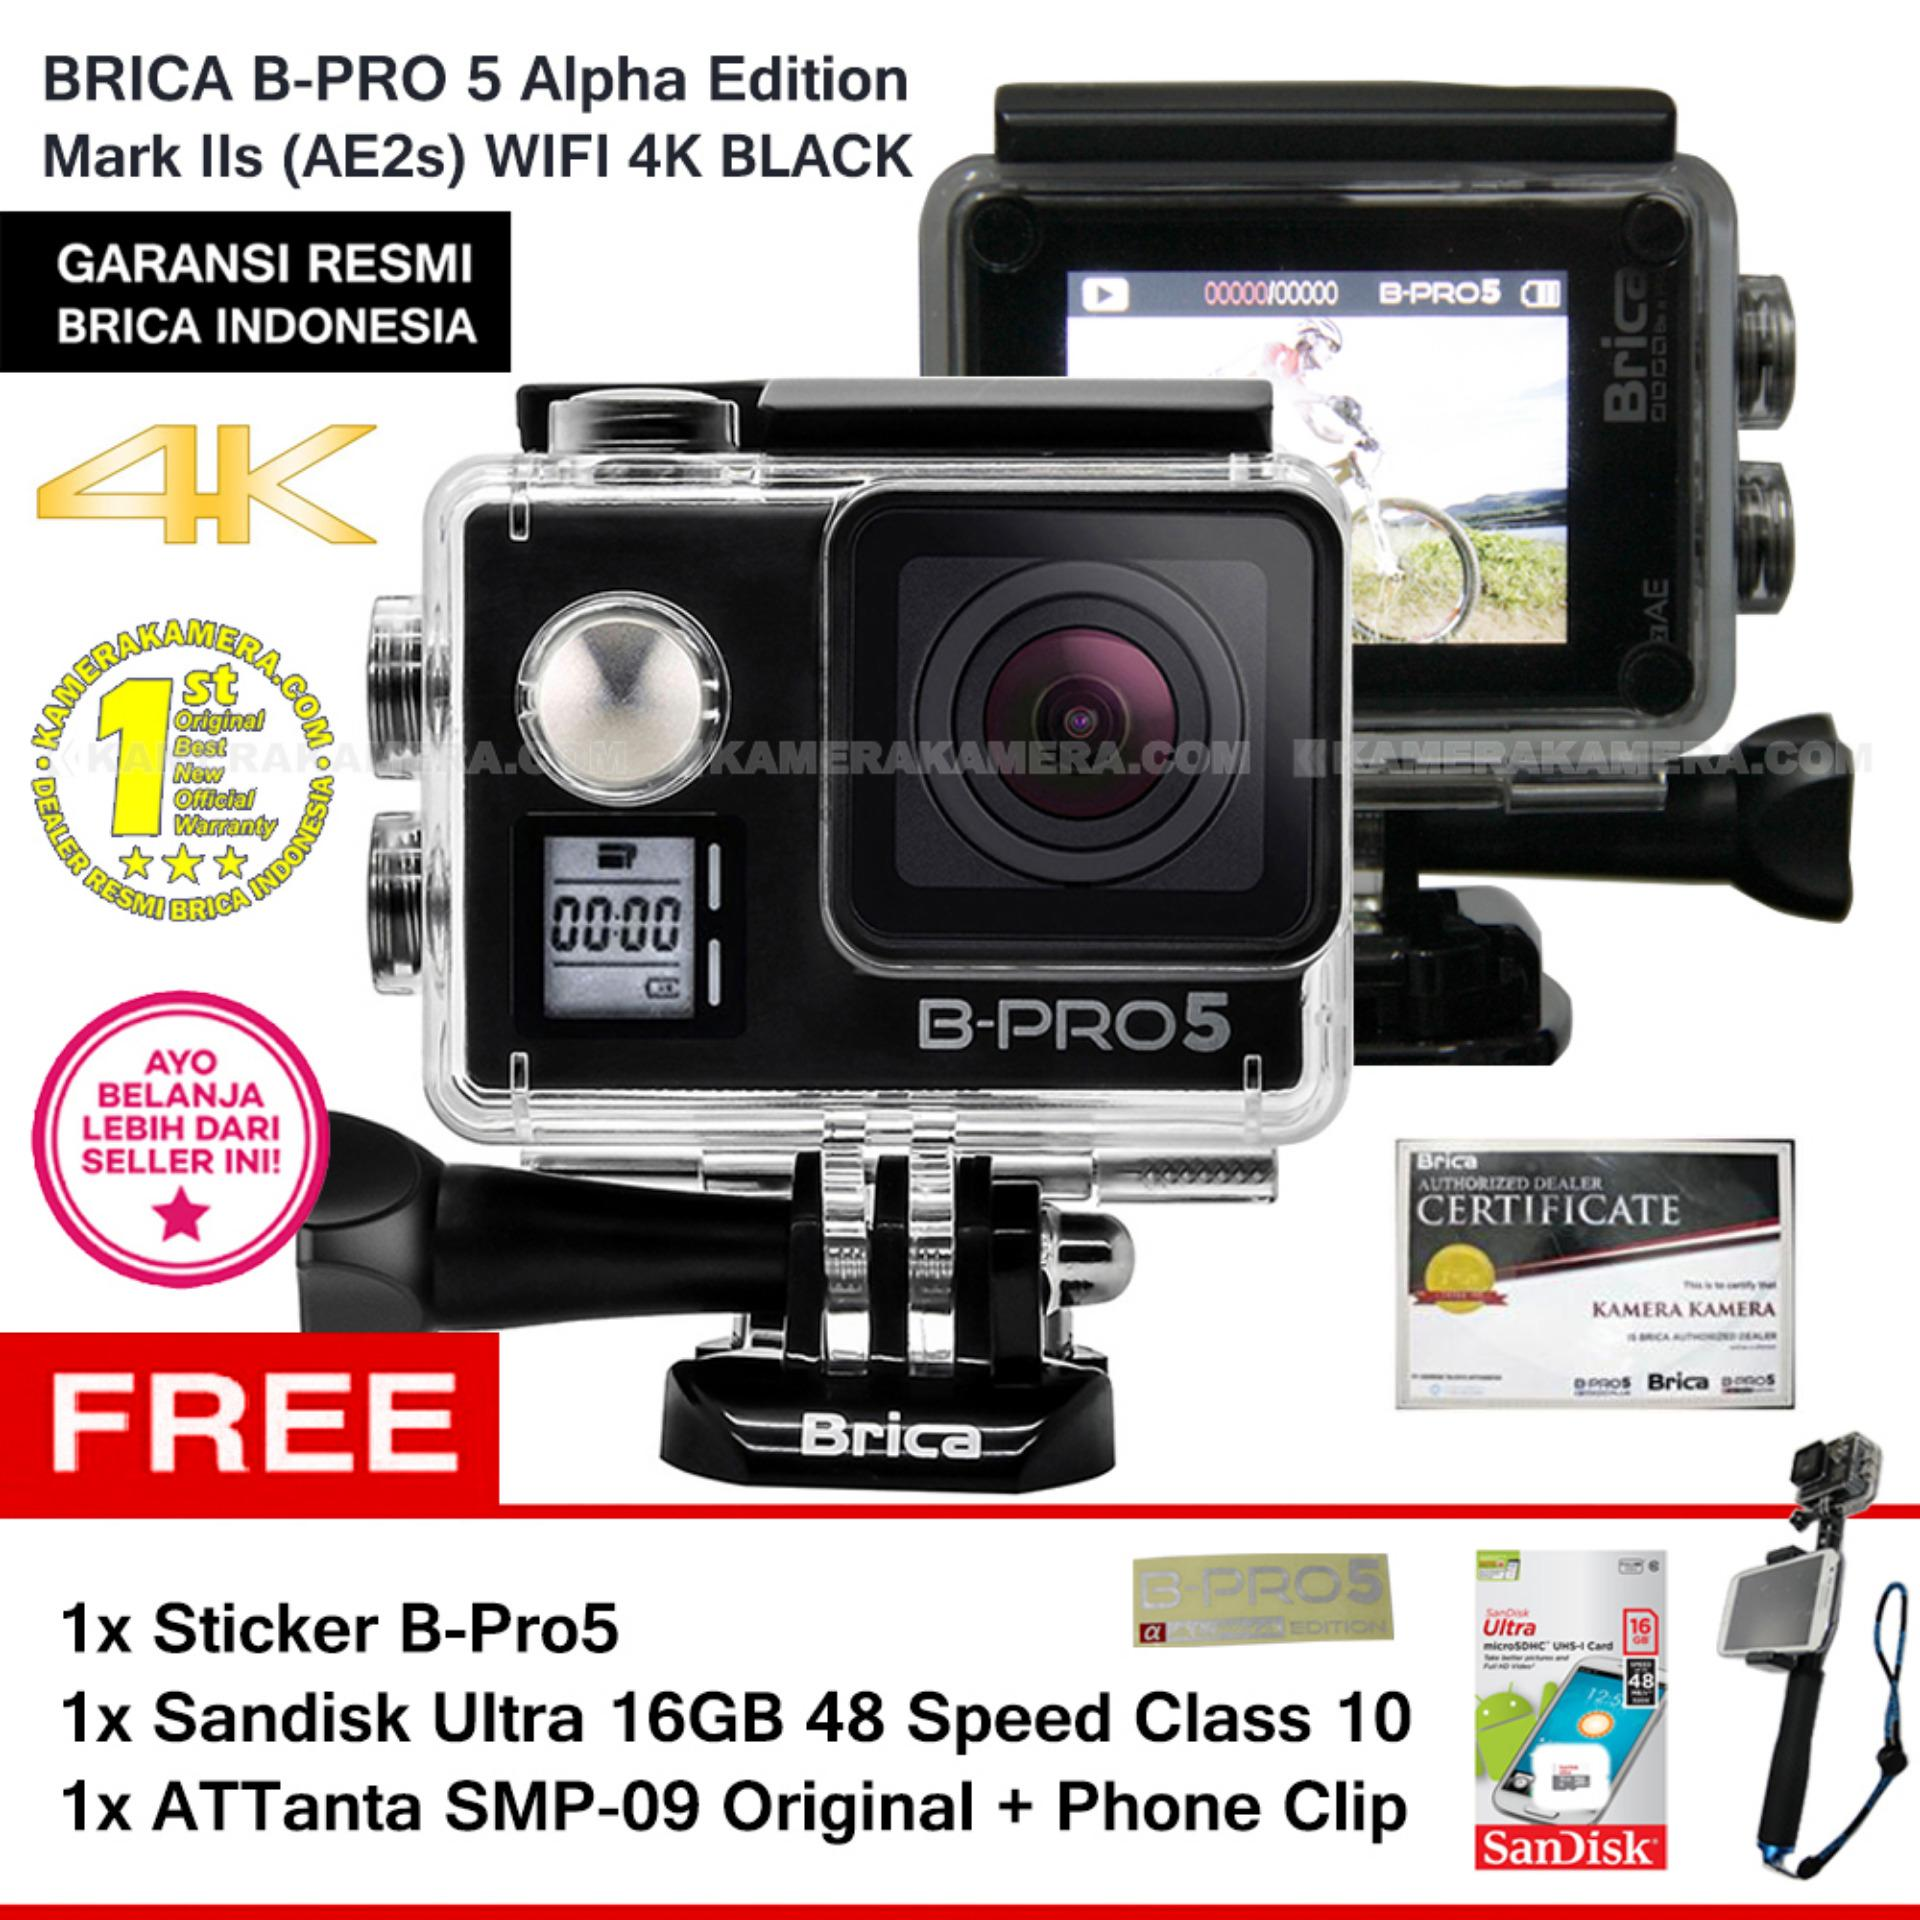 BRICA B Pro5 Alpha Edition 4K Mark IIs AE2s BLACK Sticker B